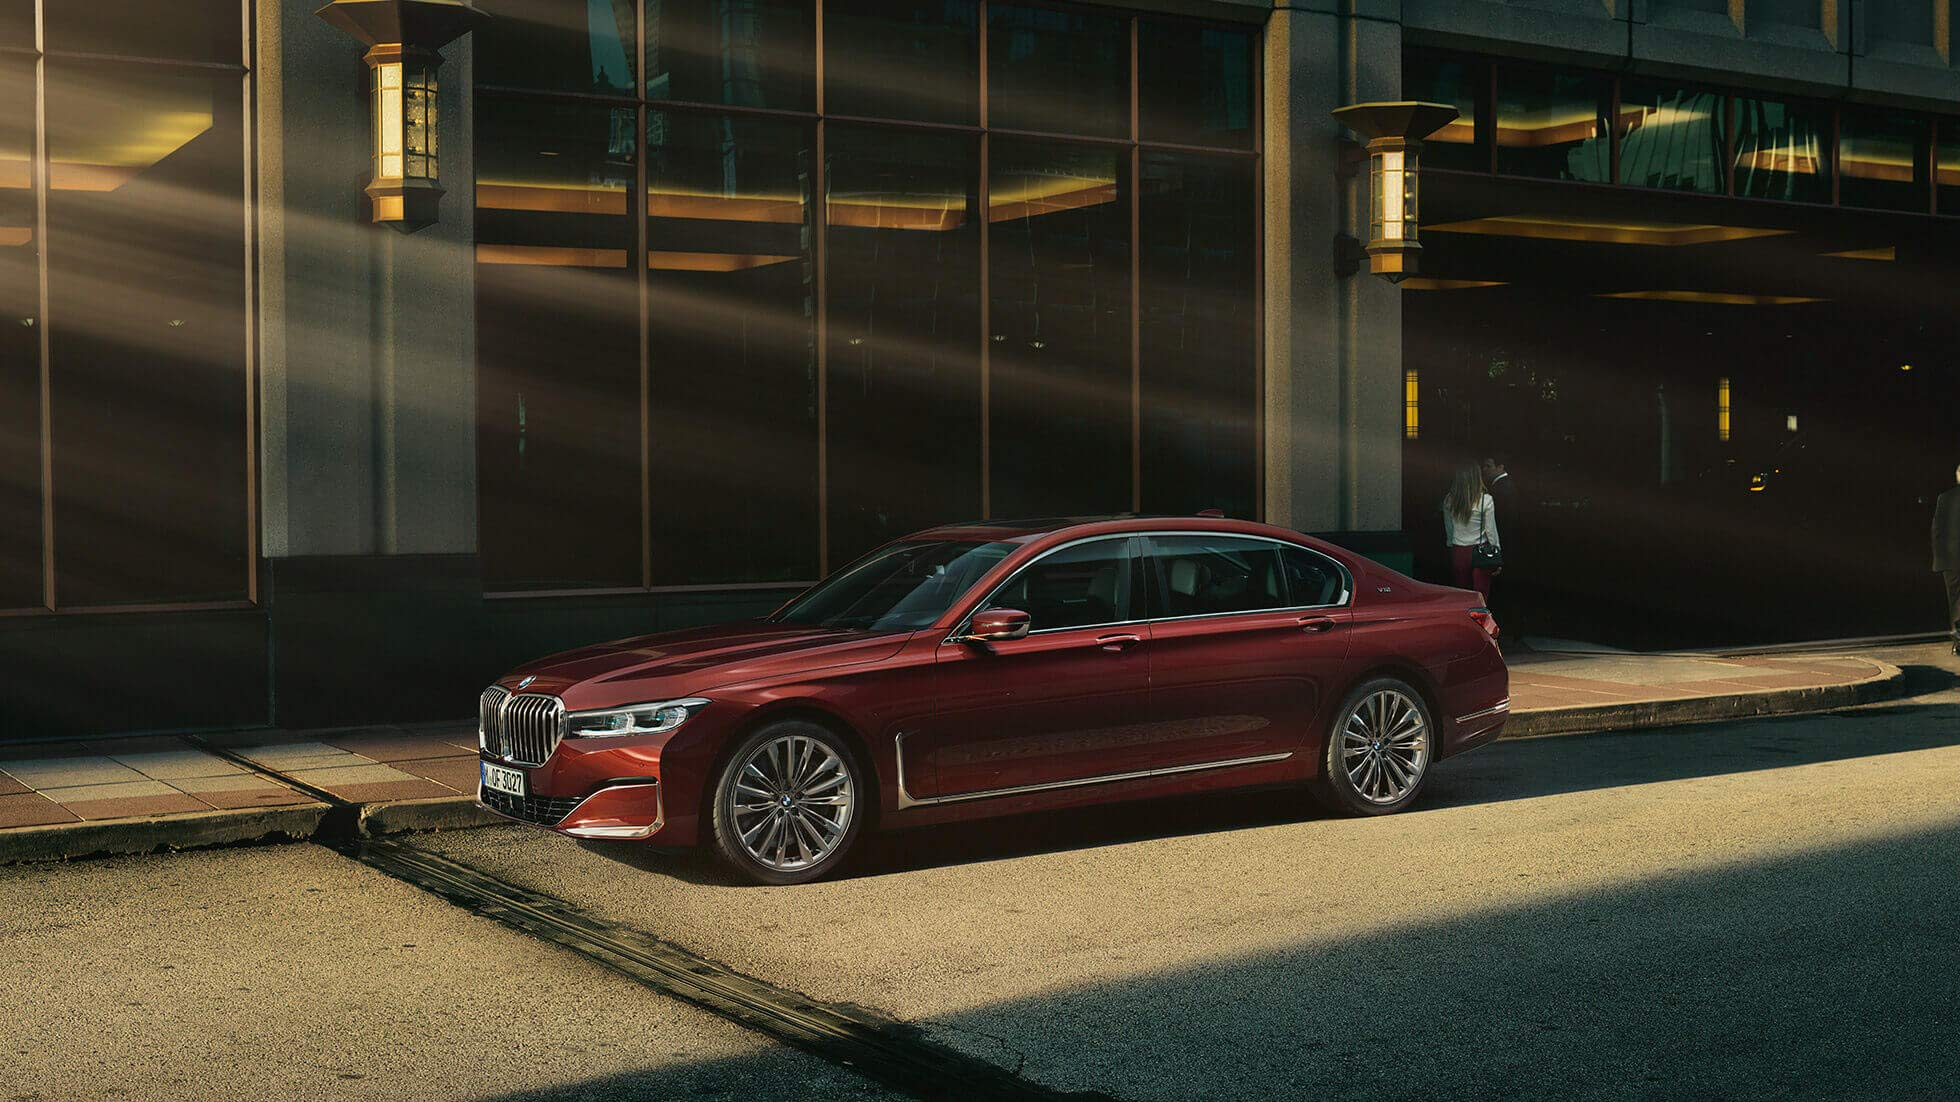 Bmw 7 Series The Sedan Of The Luxury Class Bmw In